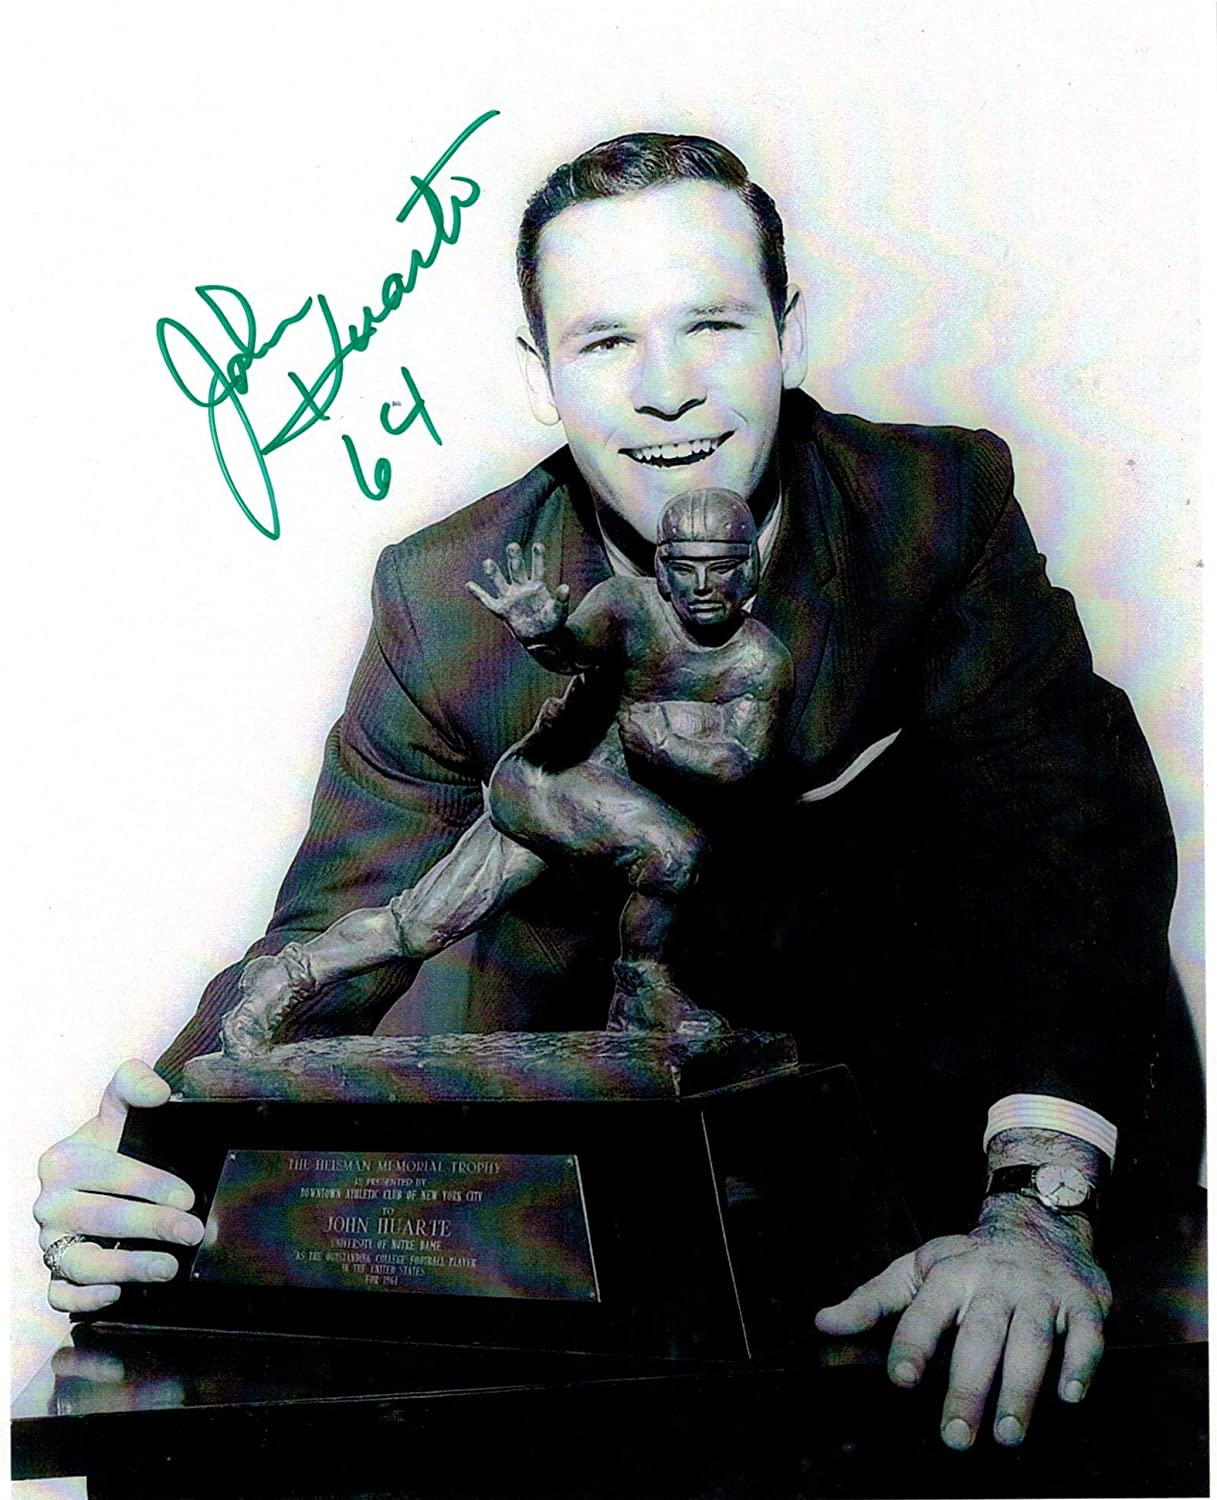 John Huarte Notre Dame Autographed 8x10 Photo Inscribed64 for the year he won the Heisman Trophy